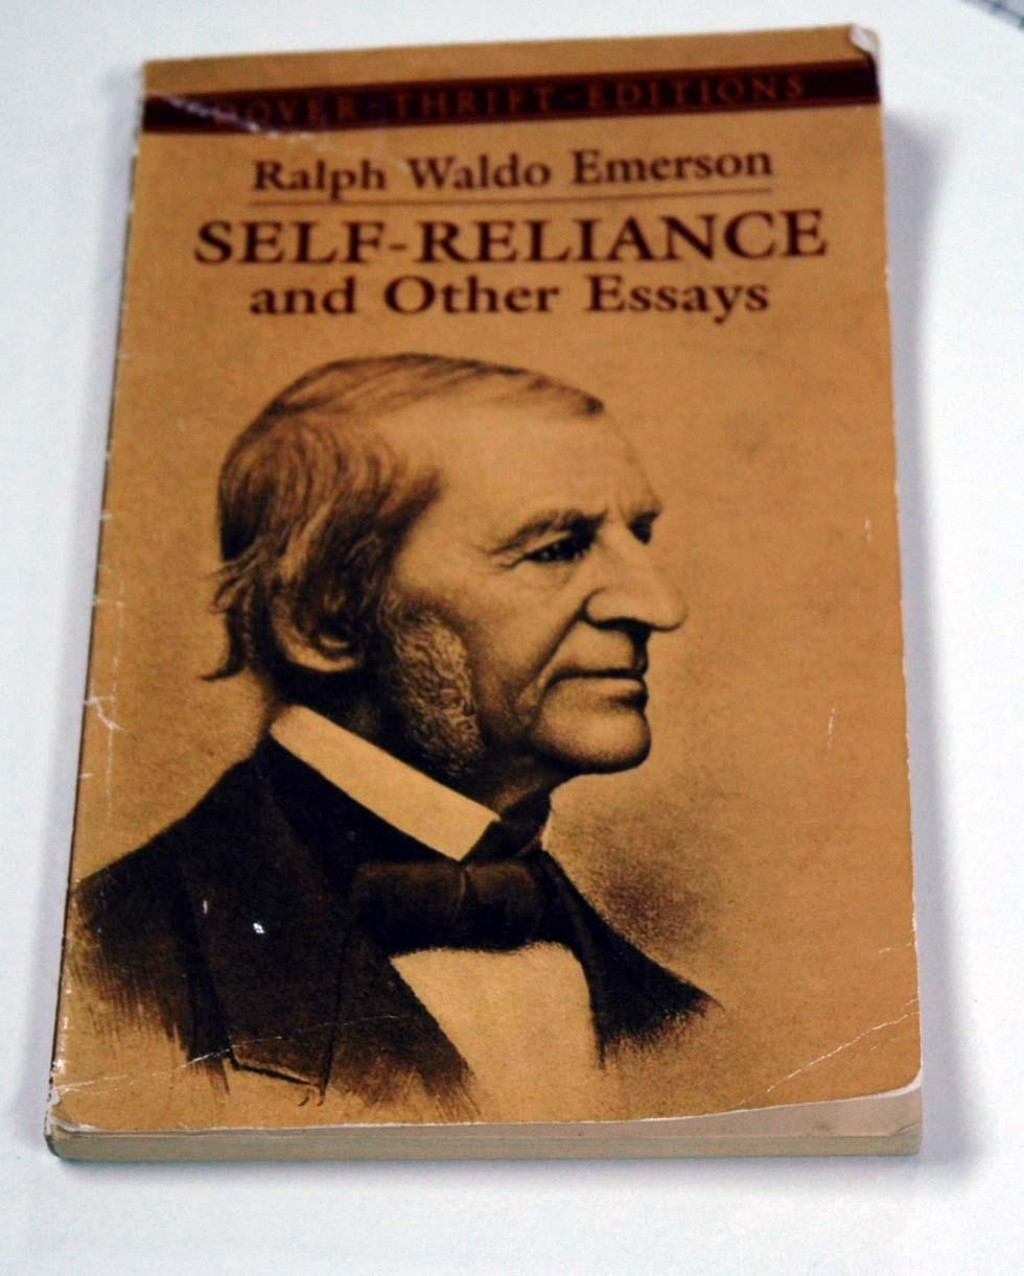 013 Emerson Self Reliance Essay Quiz Worksheet Ralph Waldo